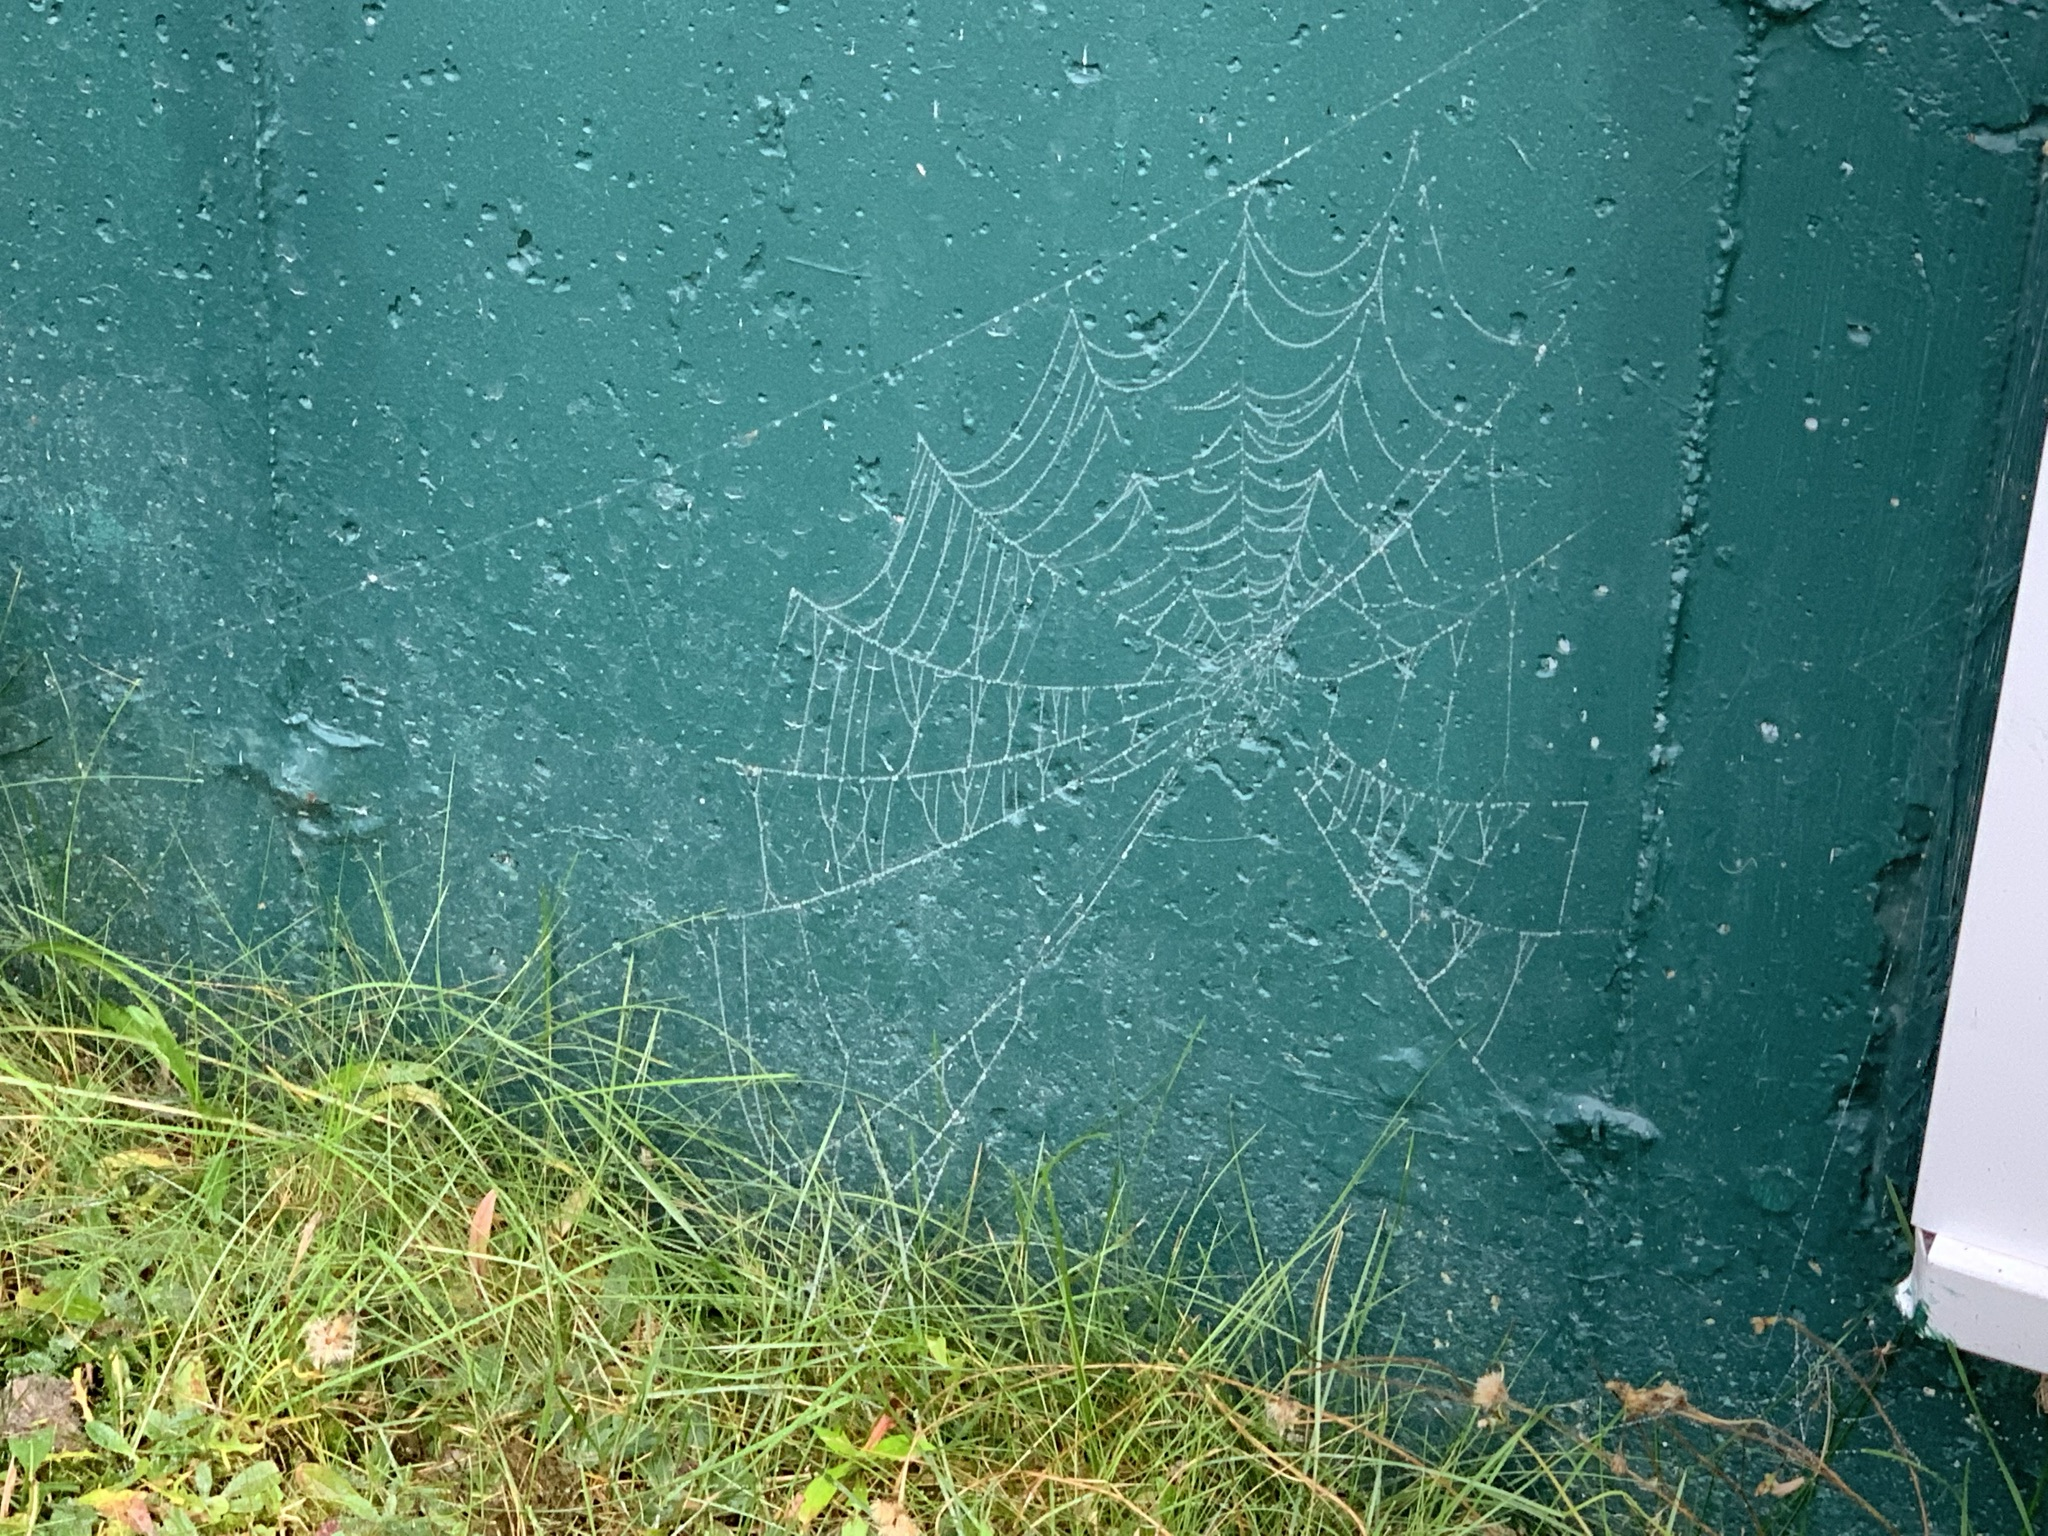 web against green all